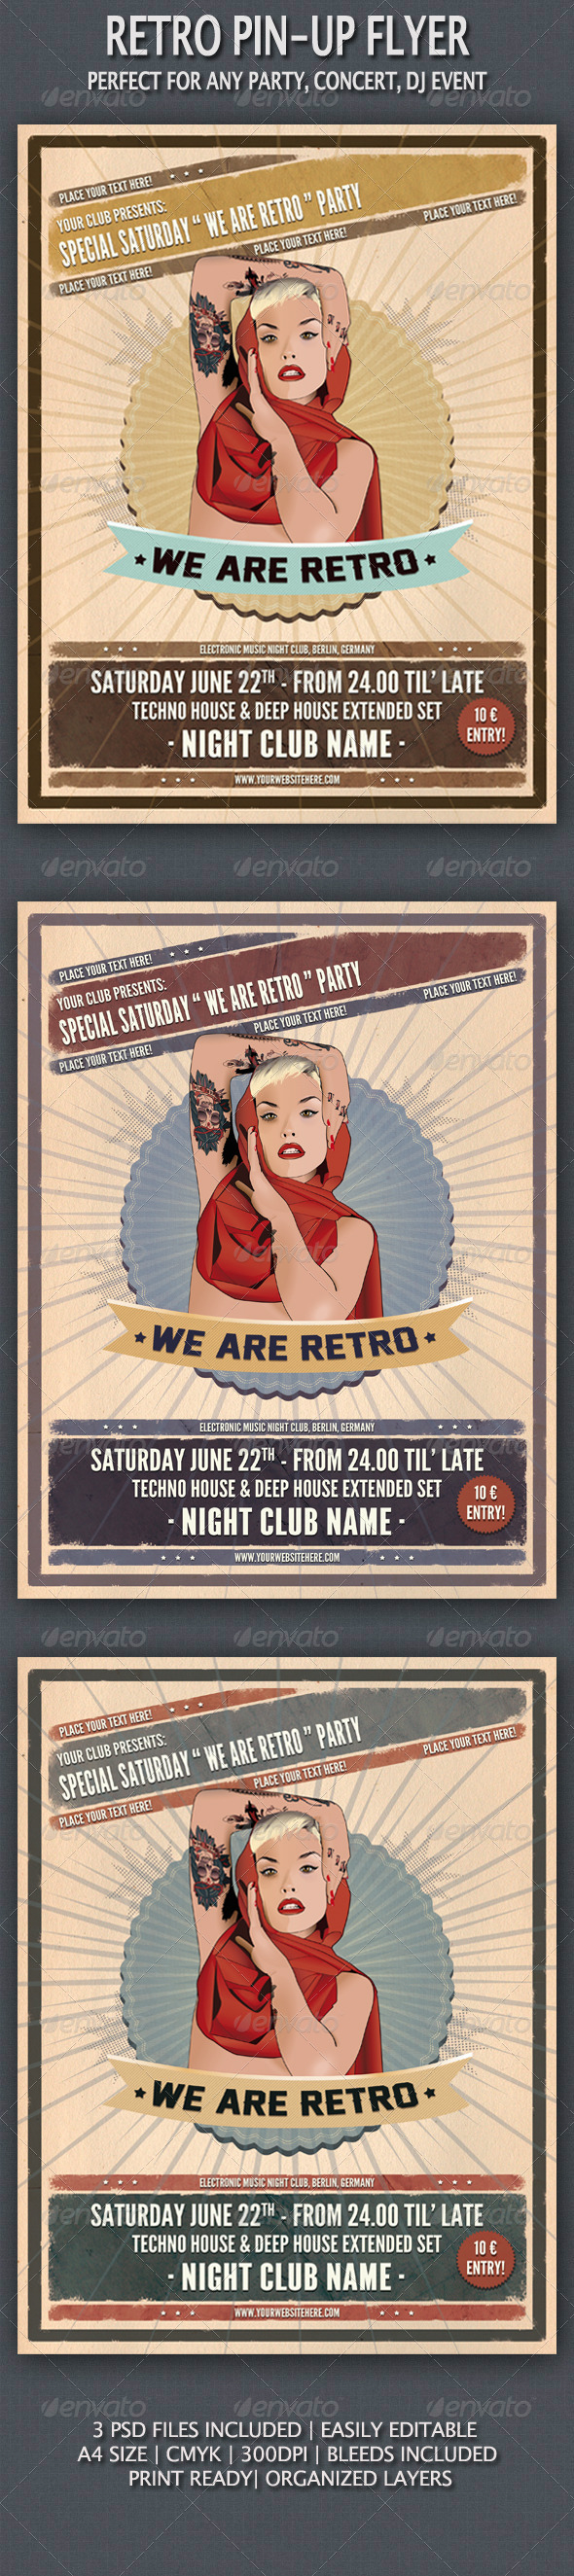 PinUp Vintage Flyer  Dj Party Fonts And Template